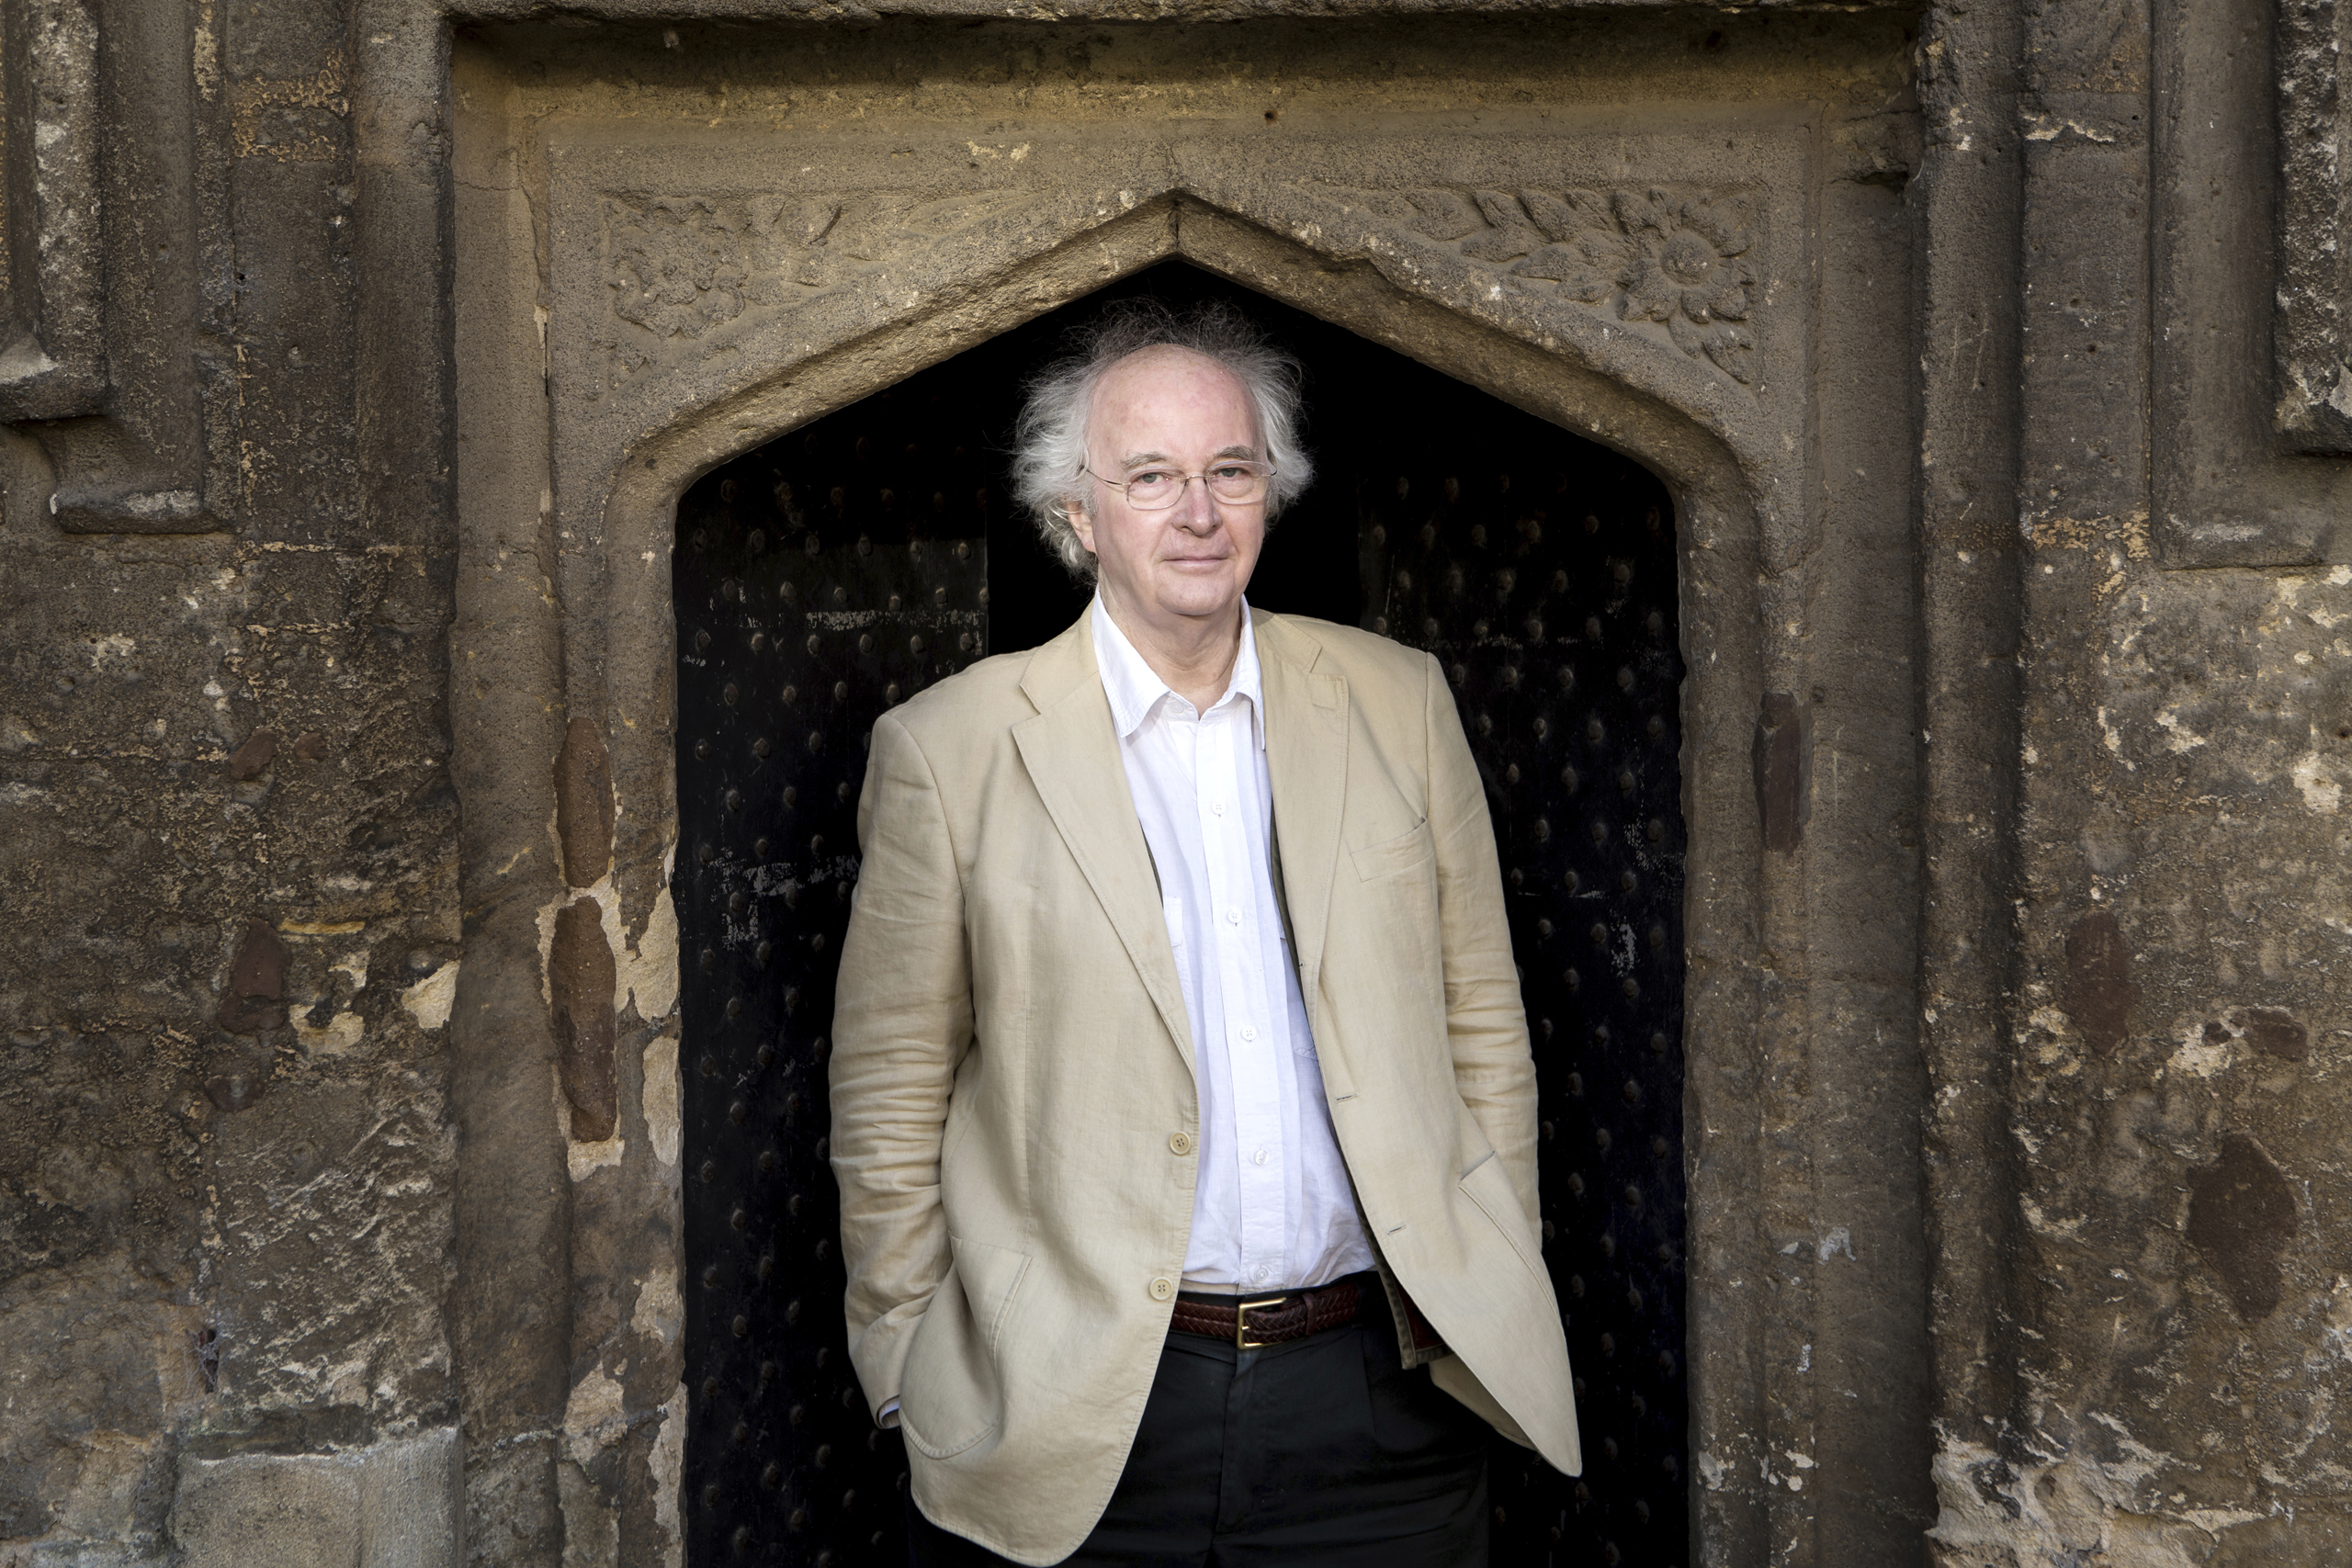 Philip Pullman poses for a photograph outside of Worcester College, in Oxford, England on Jan. 11, 2017.